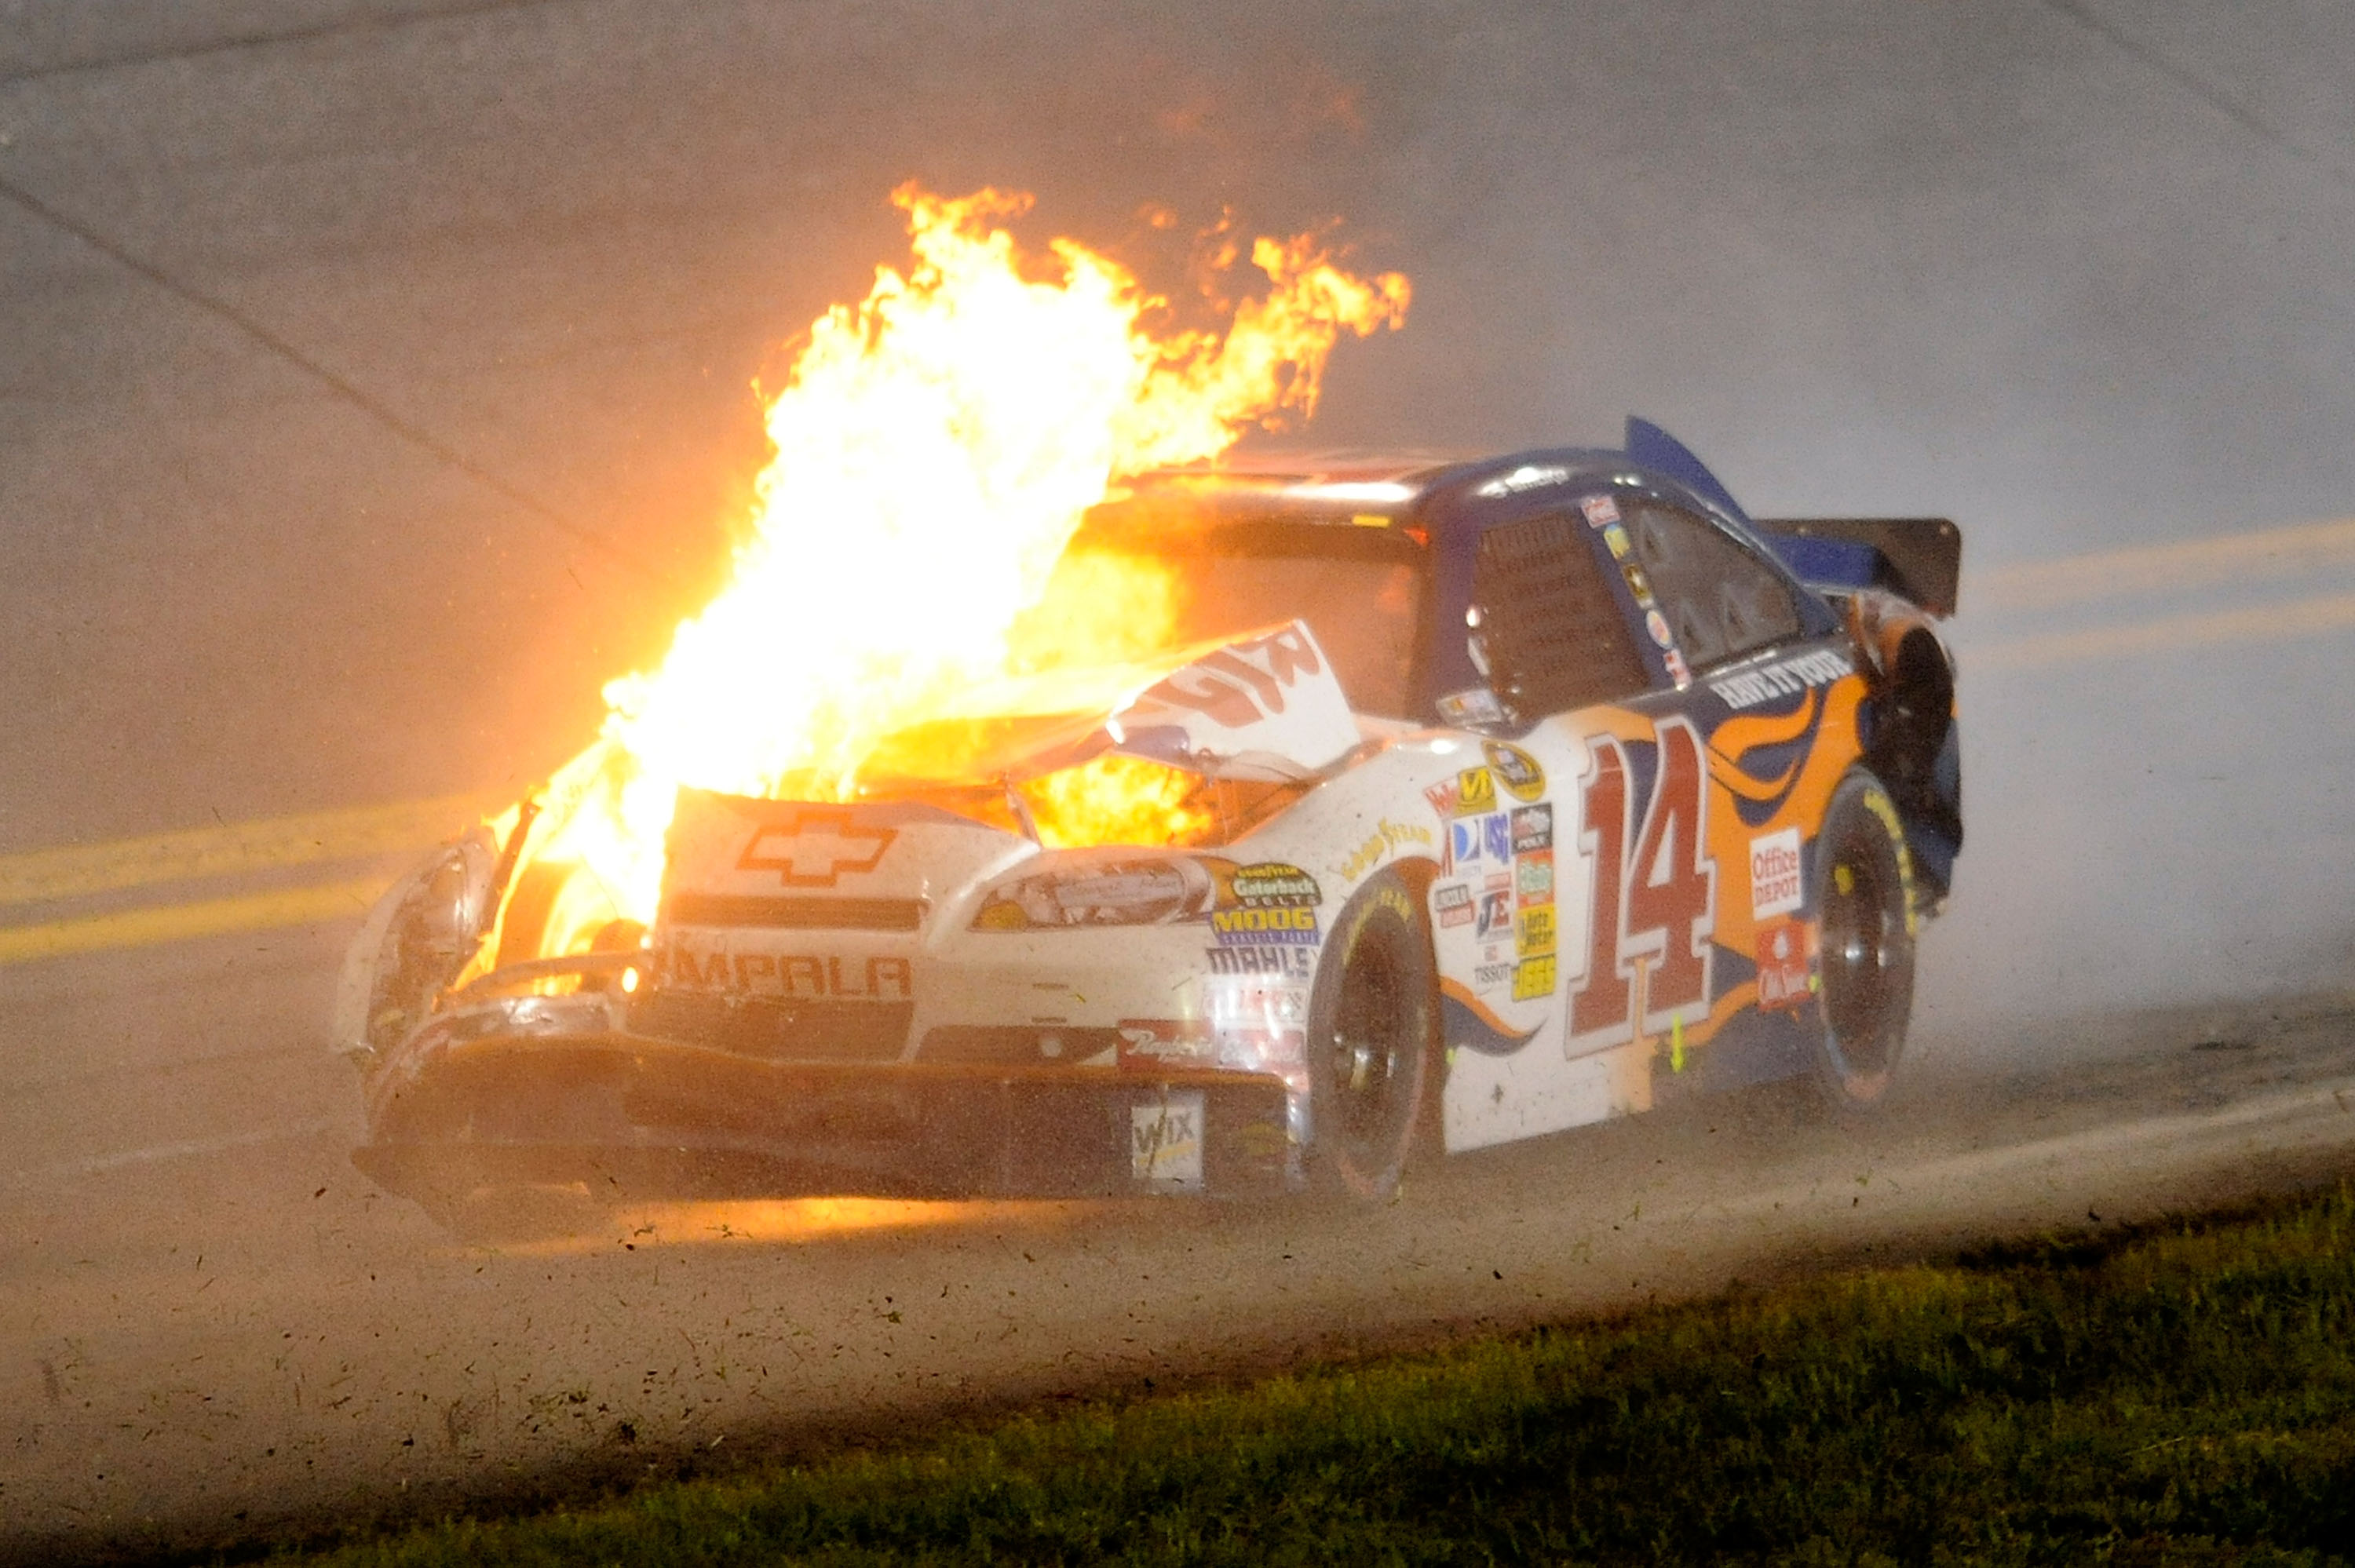 Tony Stewart's last trip to Daytona in July ended with him flame broiled.